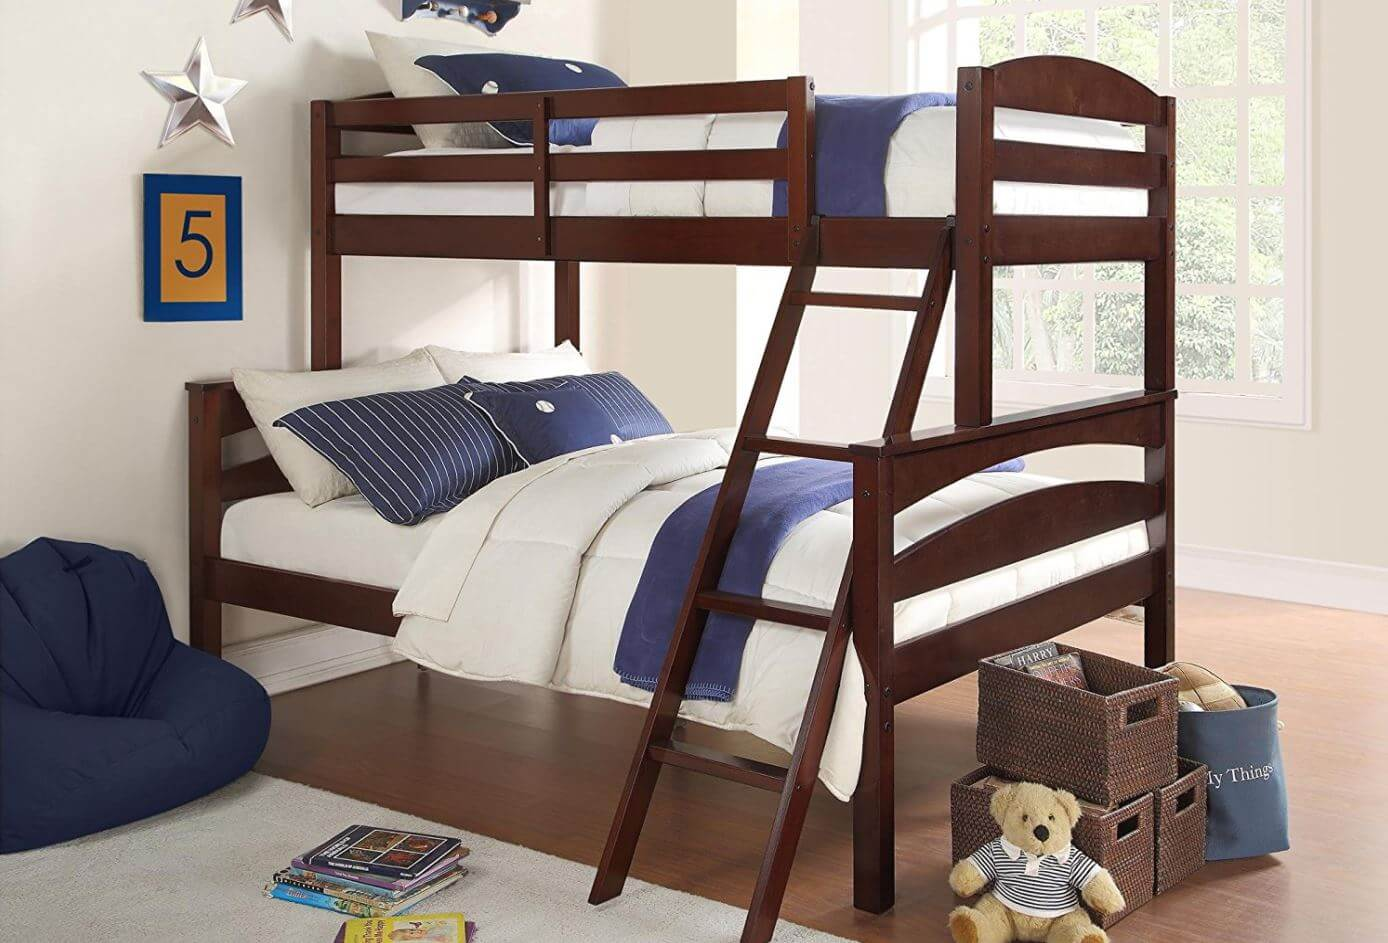 Best Affordable Bunk Beds For Kids Under 300 Bunk